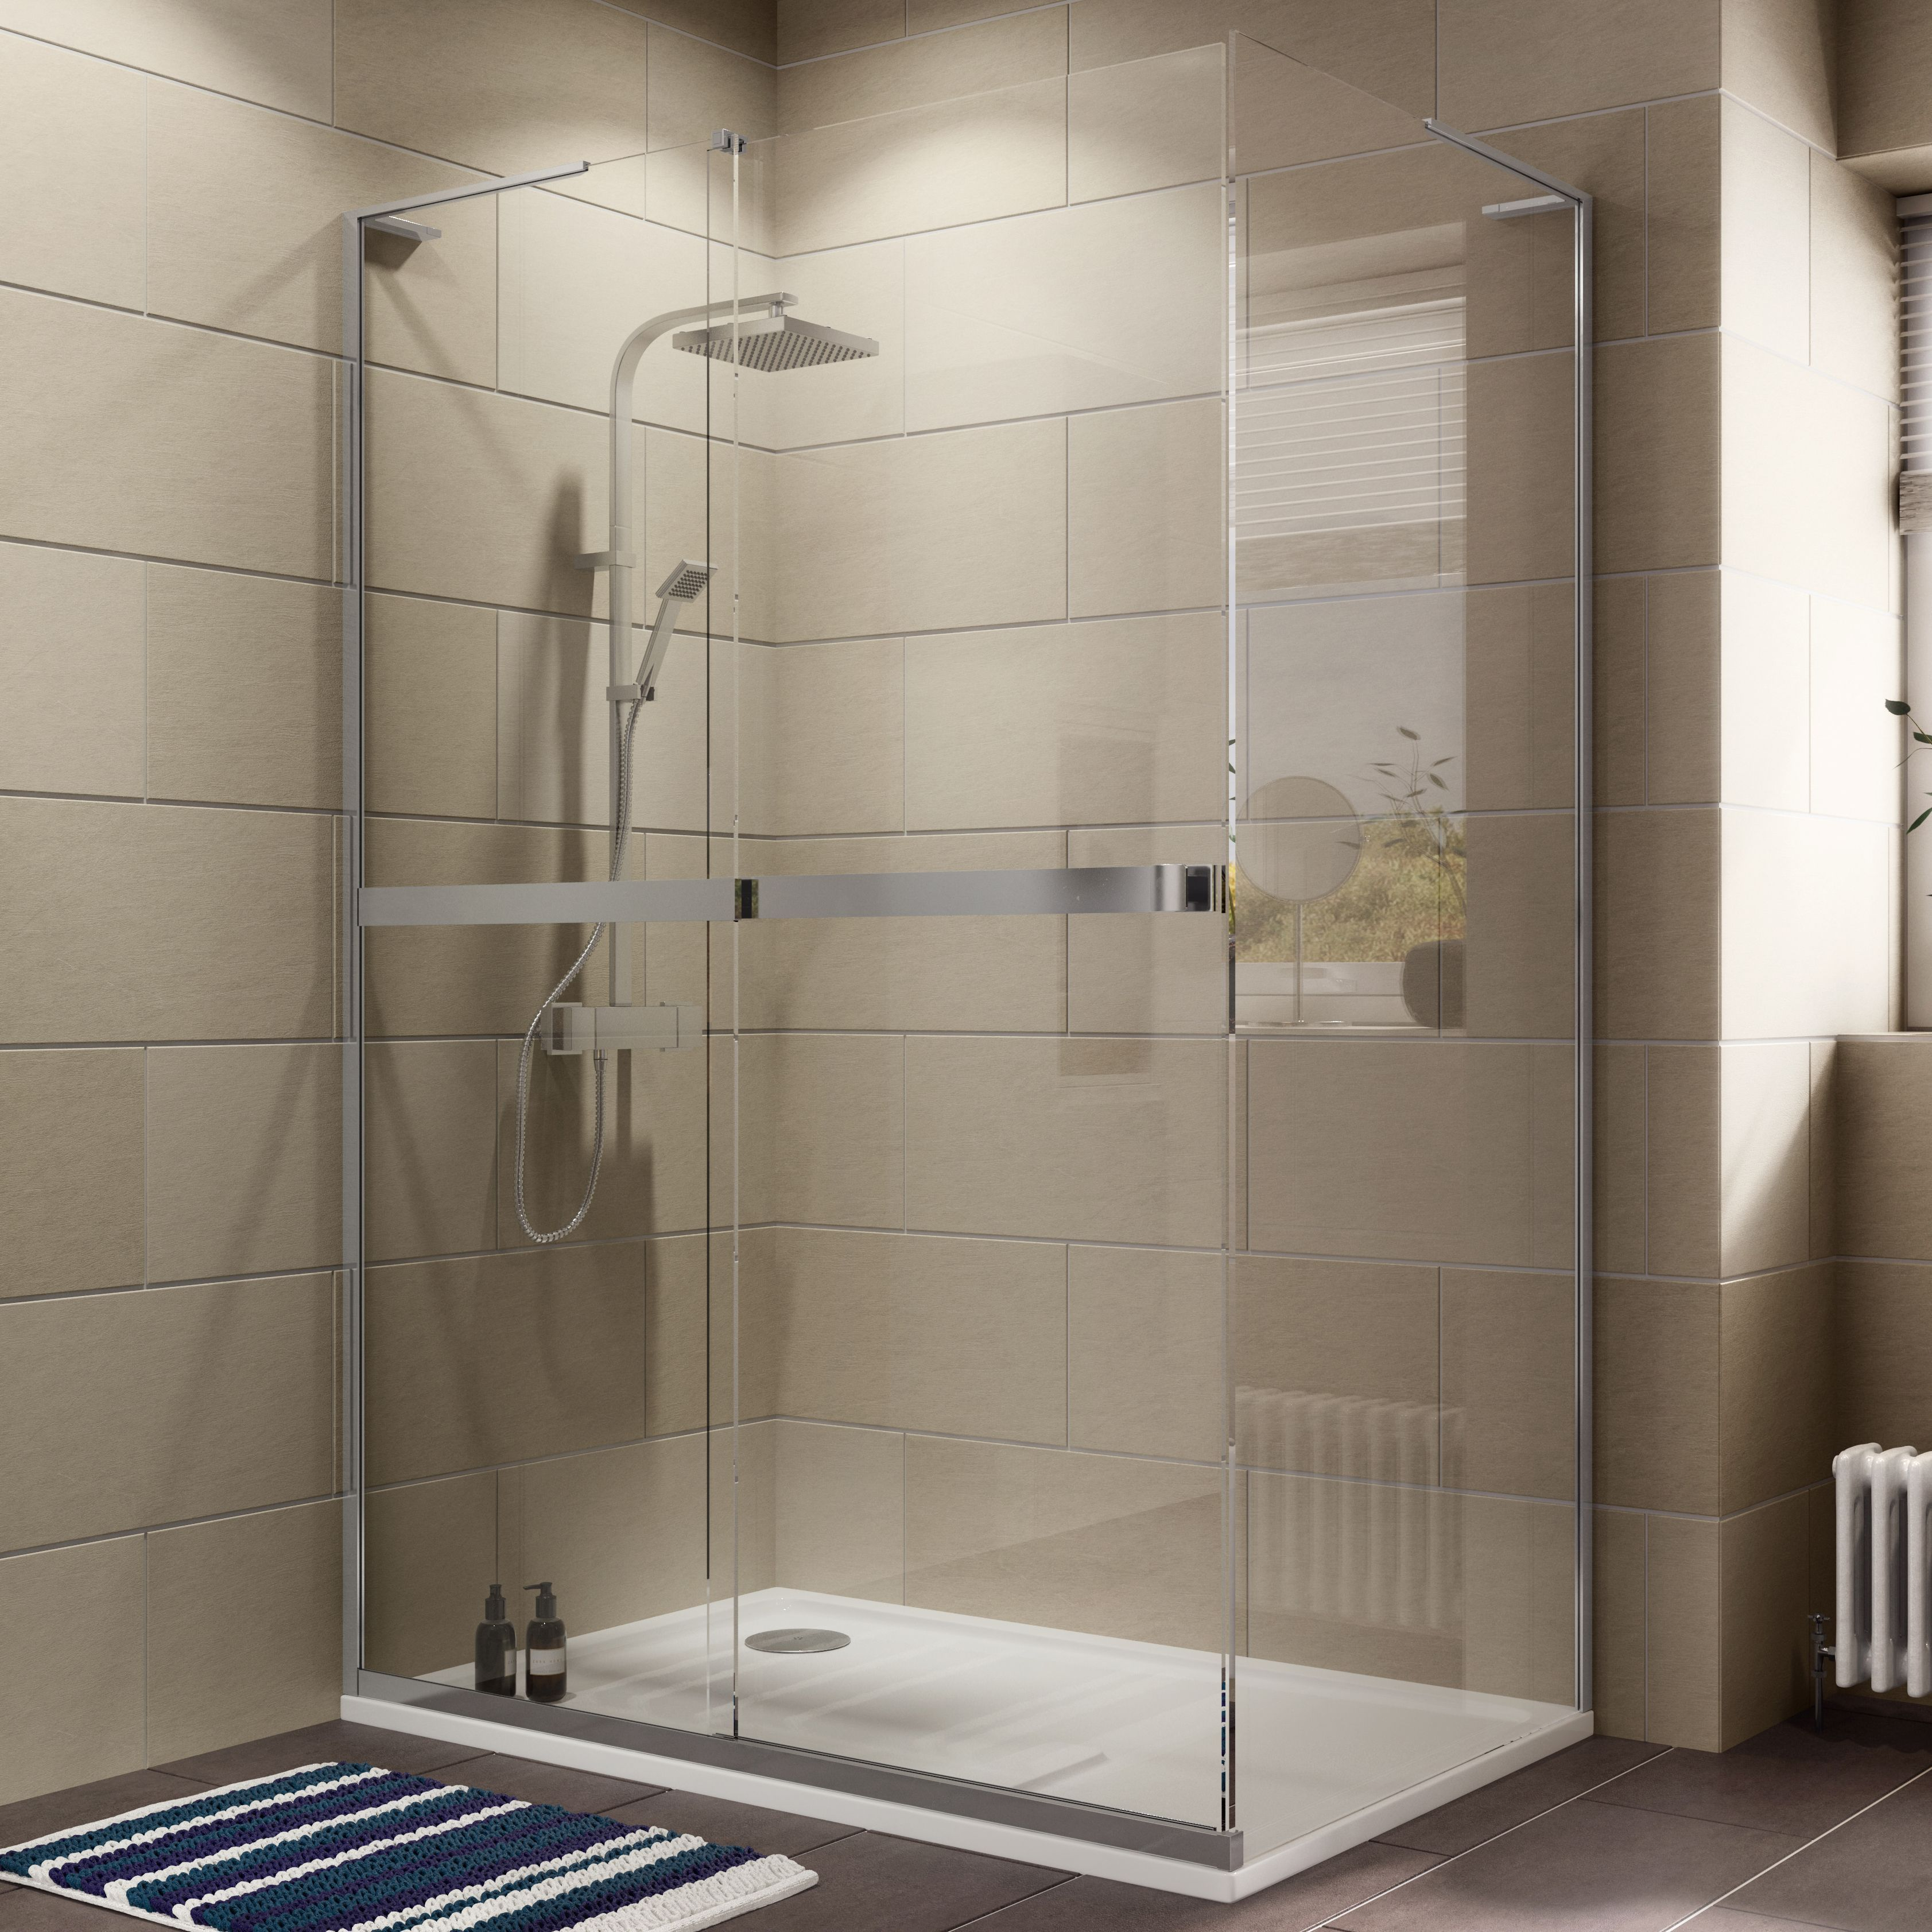 Cooke & Lewis Grandeur Rectangular Shower enclosure, tray & waste ...